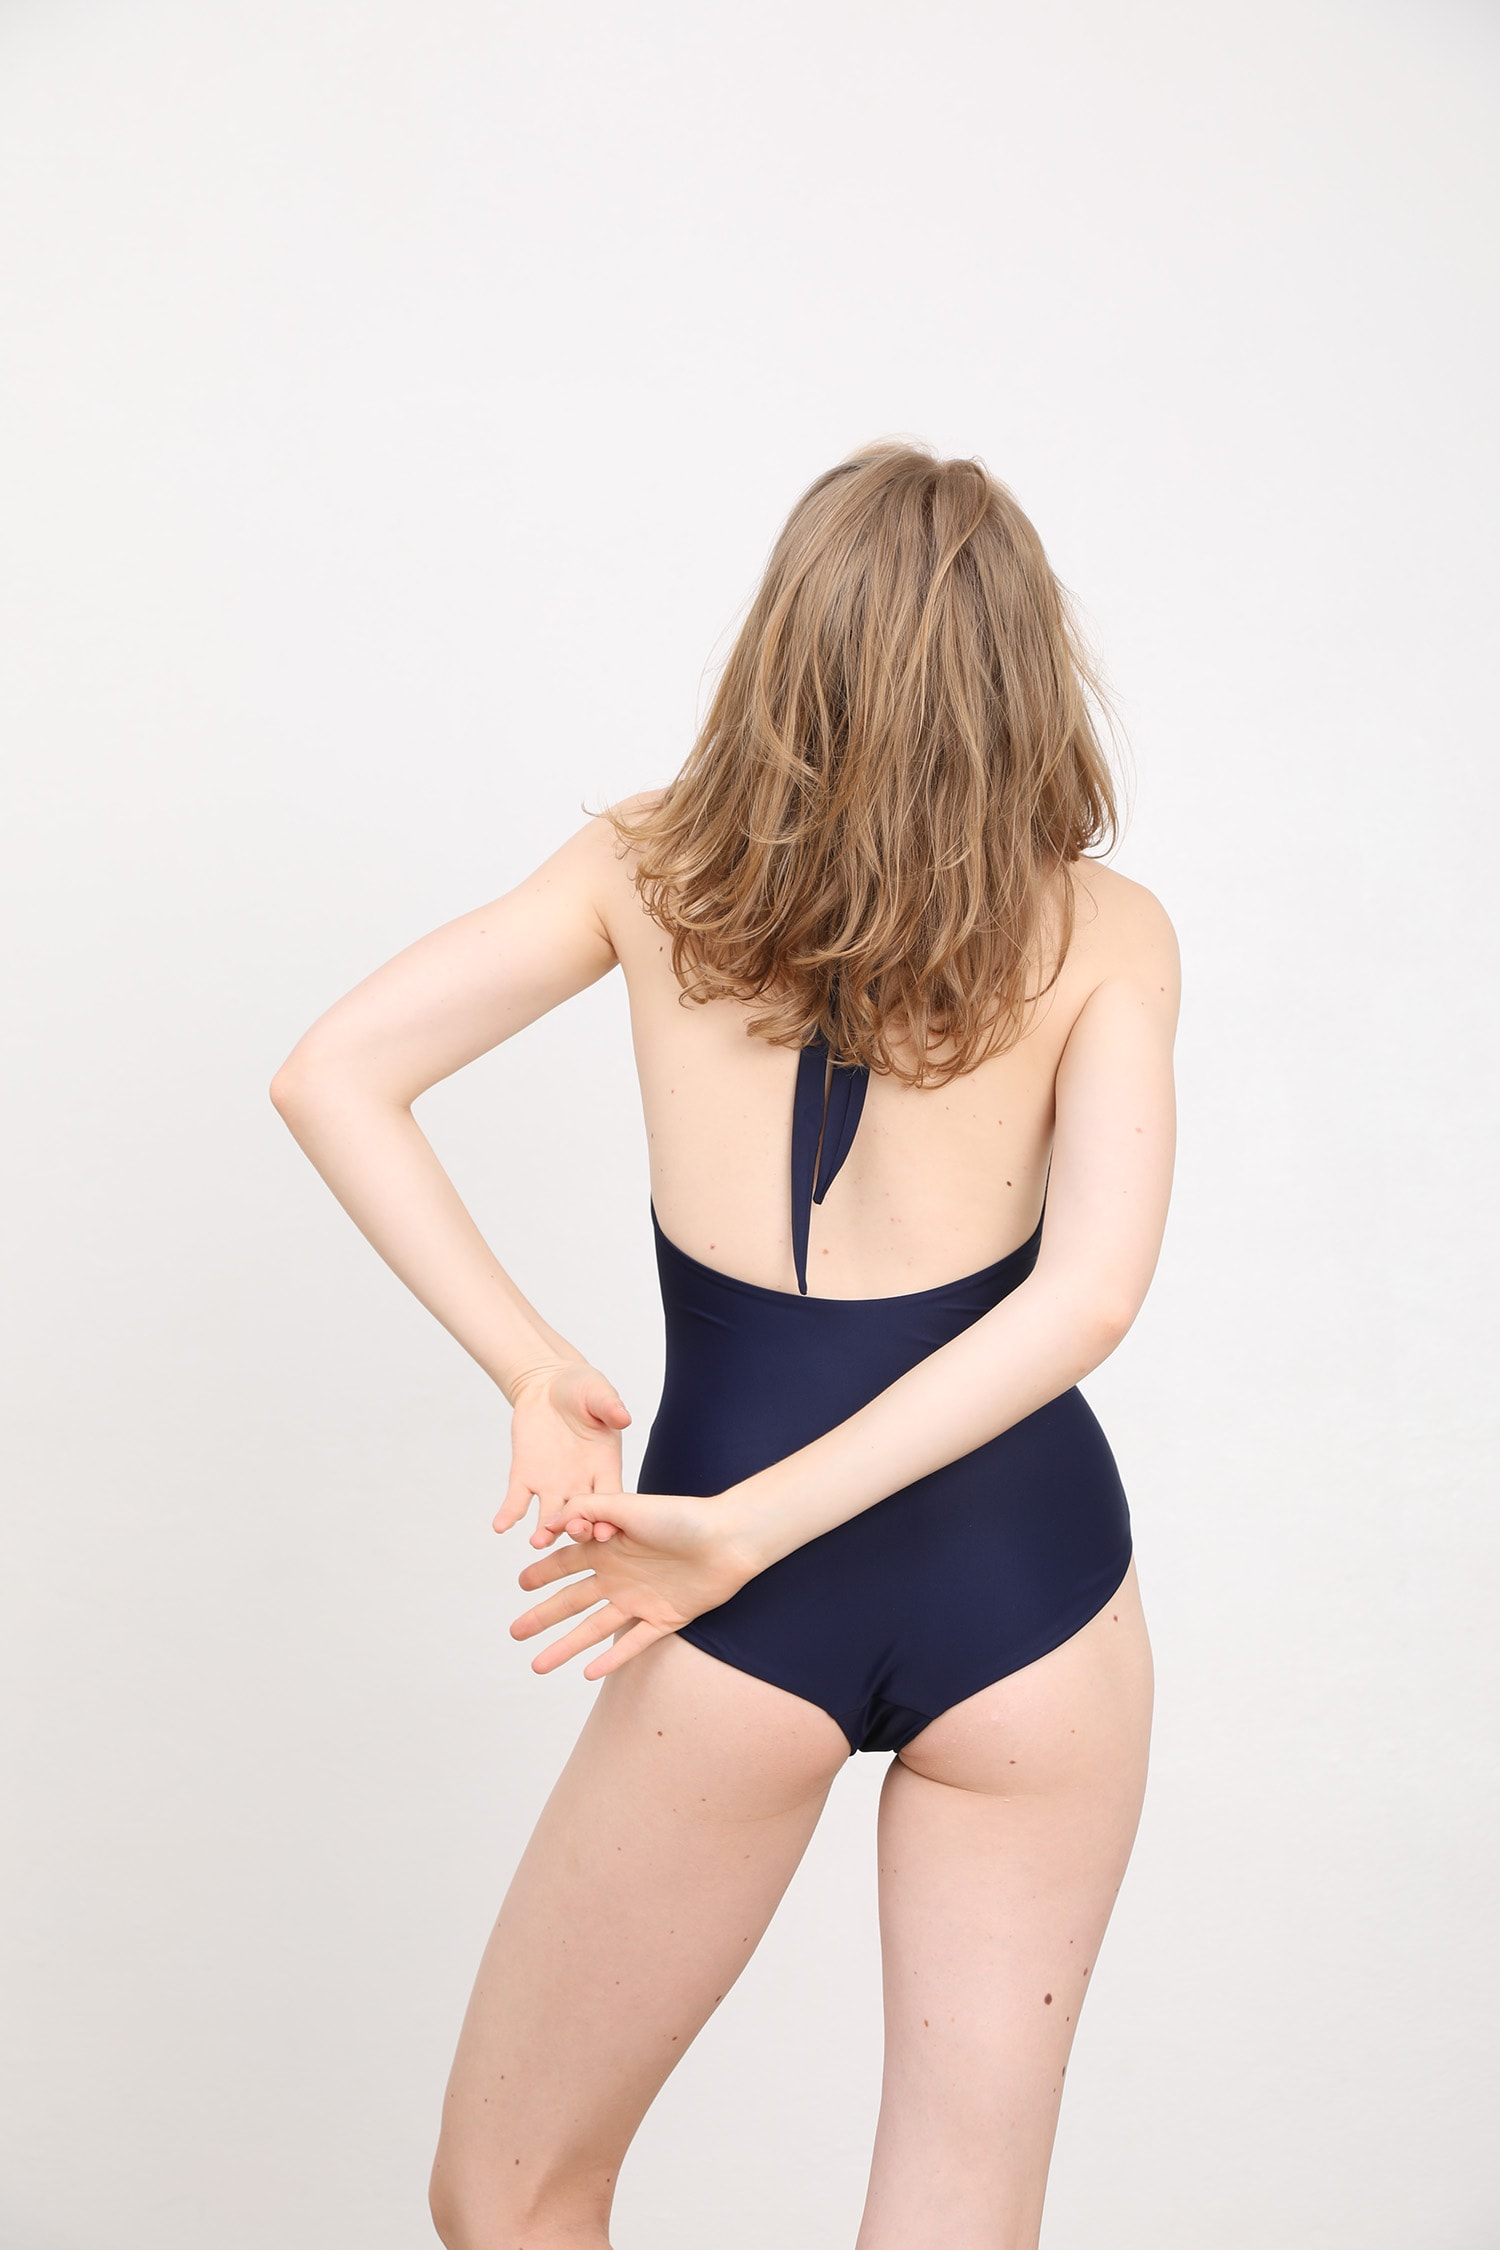 margaret and hermione_ss19_swimsuit no4_night_157,00eur_hinten_online